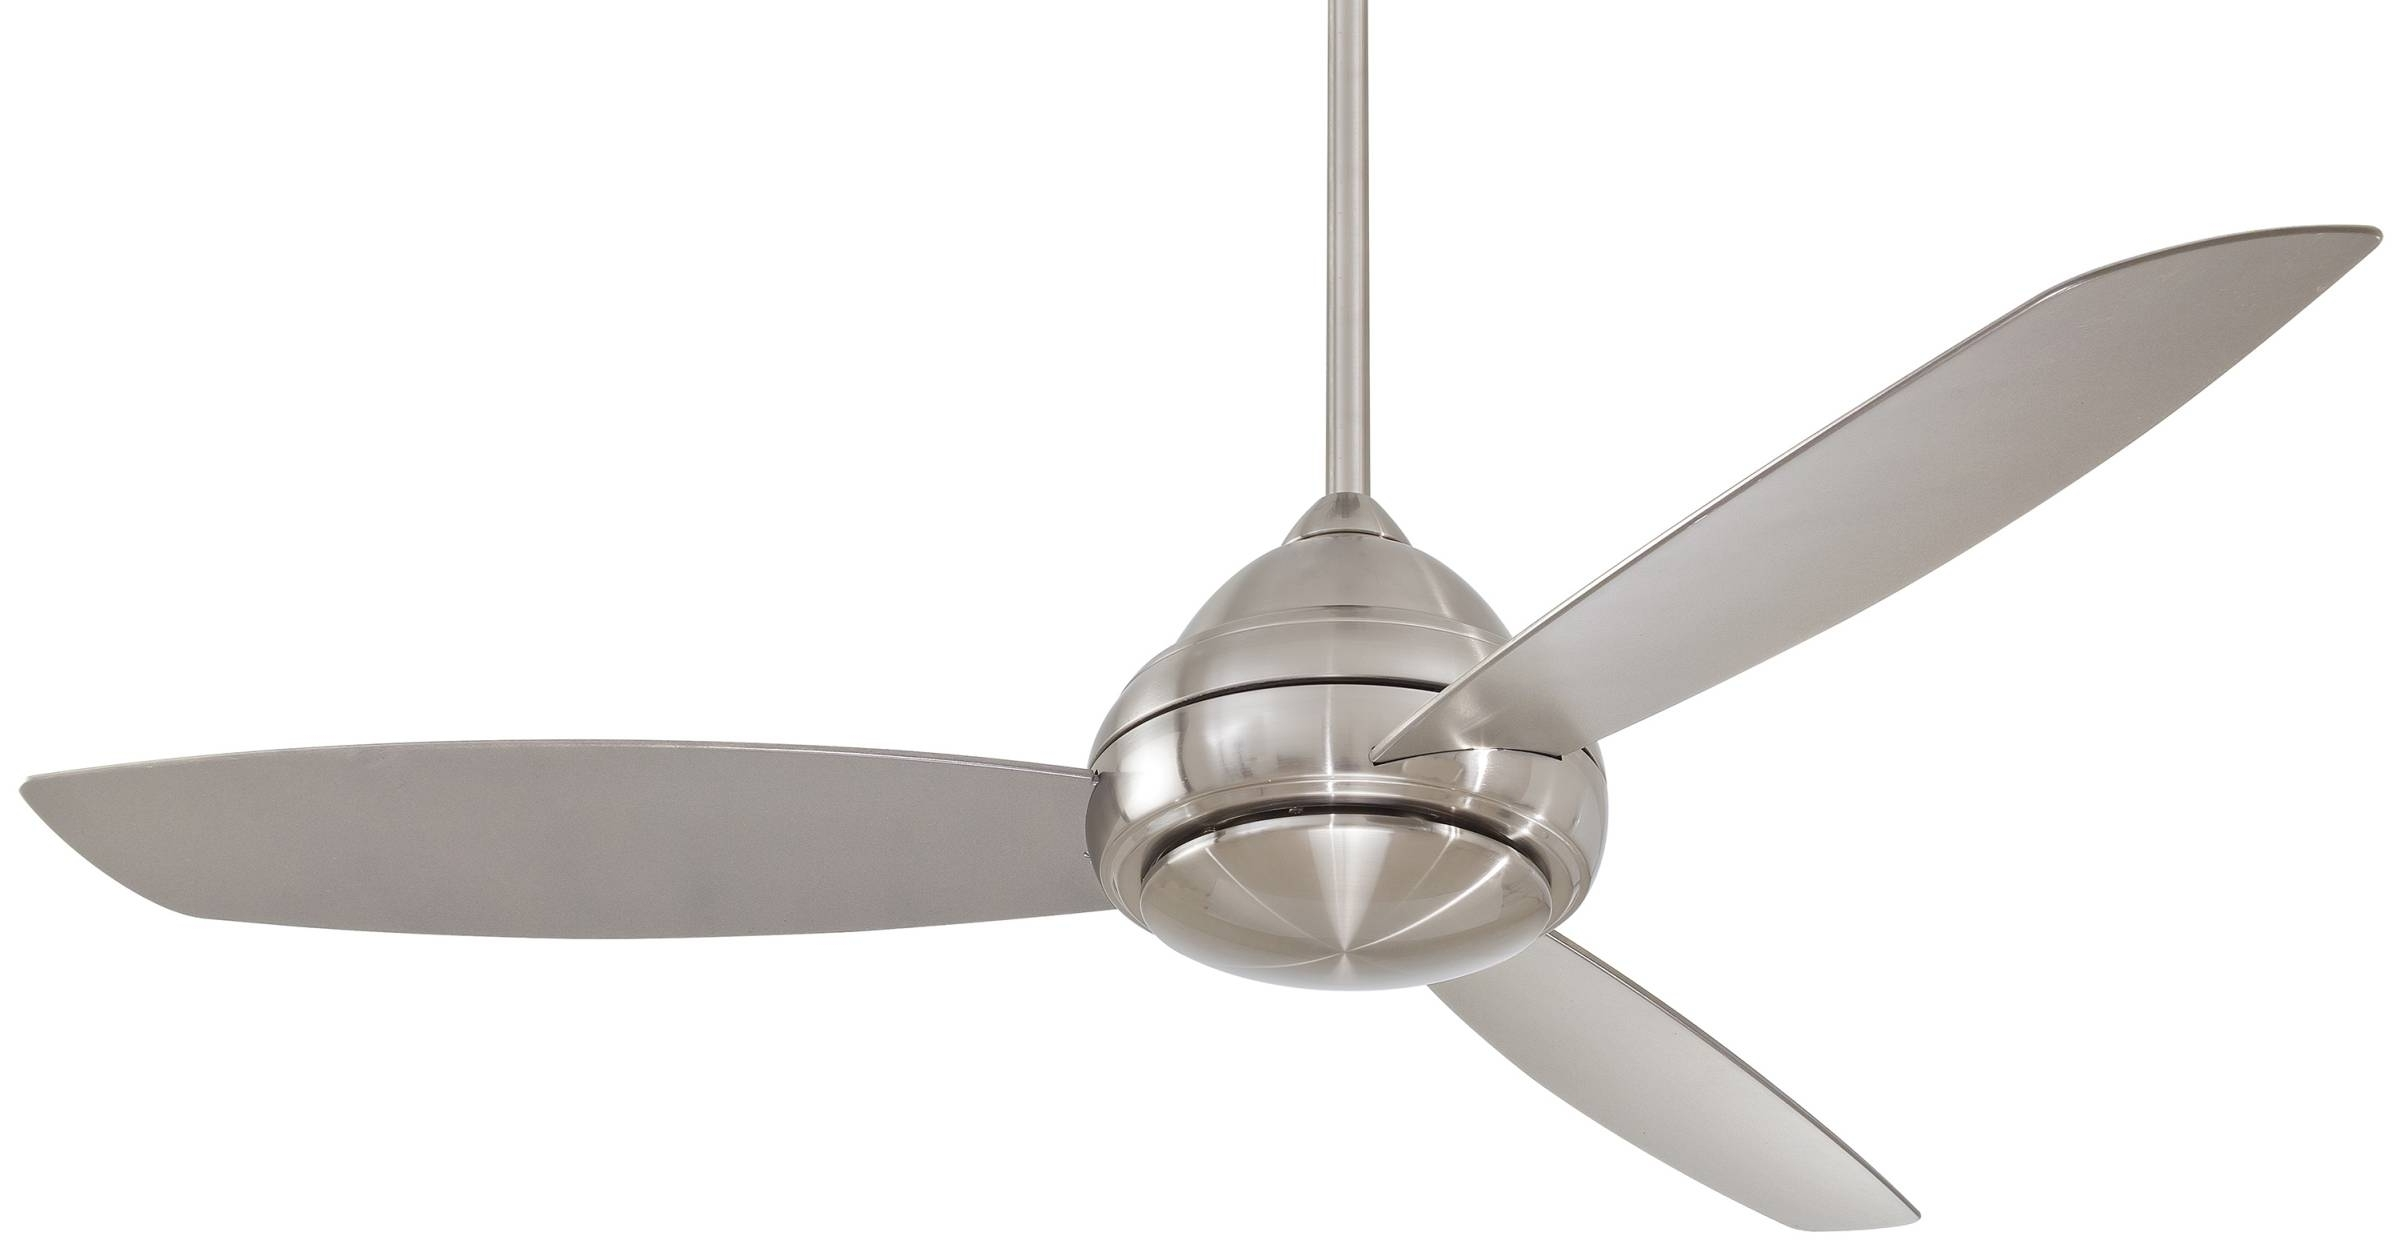 Fashionable Stainless Steel Outdoor Ceiling Fans With Light For Install Stainless Steel Outdoor Ceiling Fans Marine Grade 316 Large (View 5 of 20)